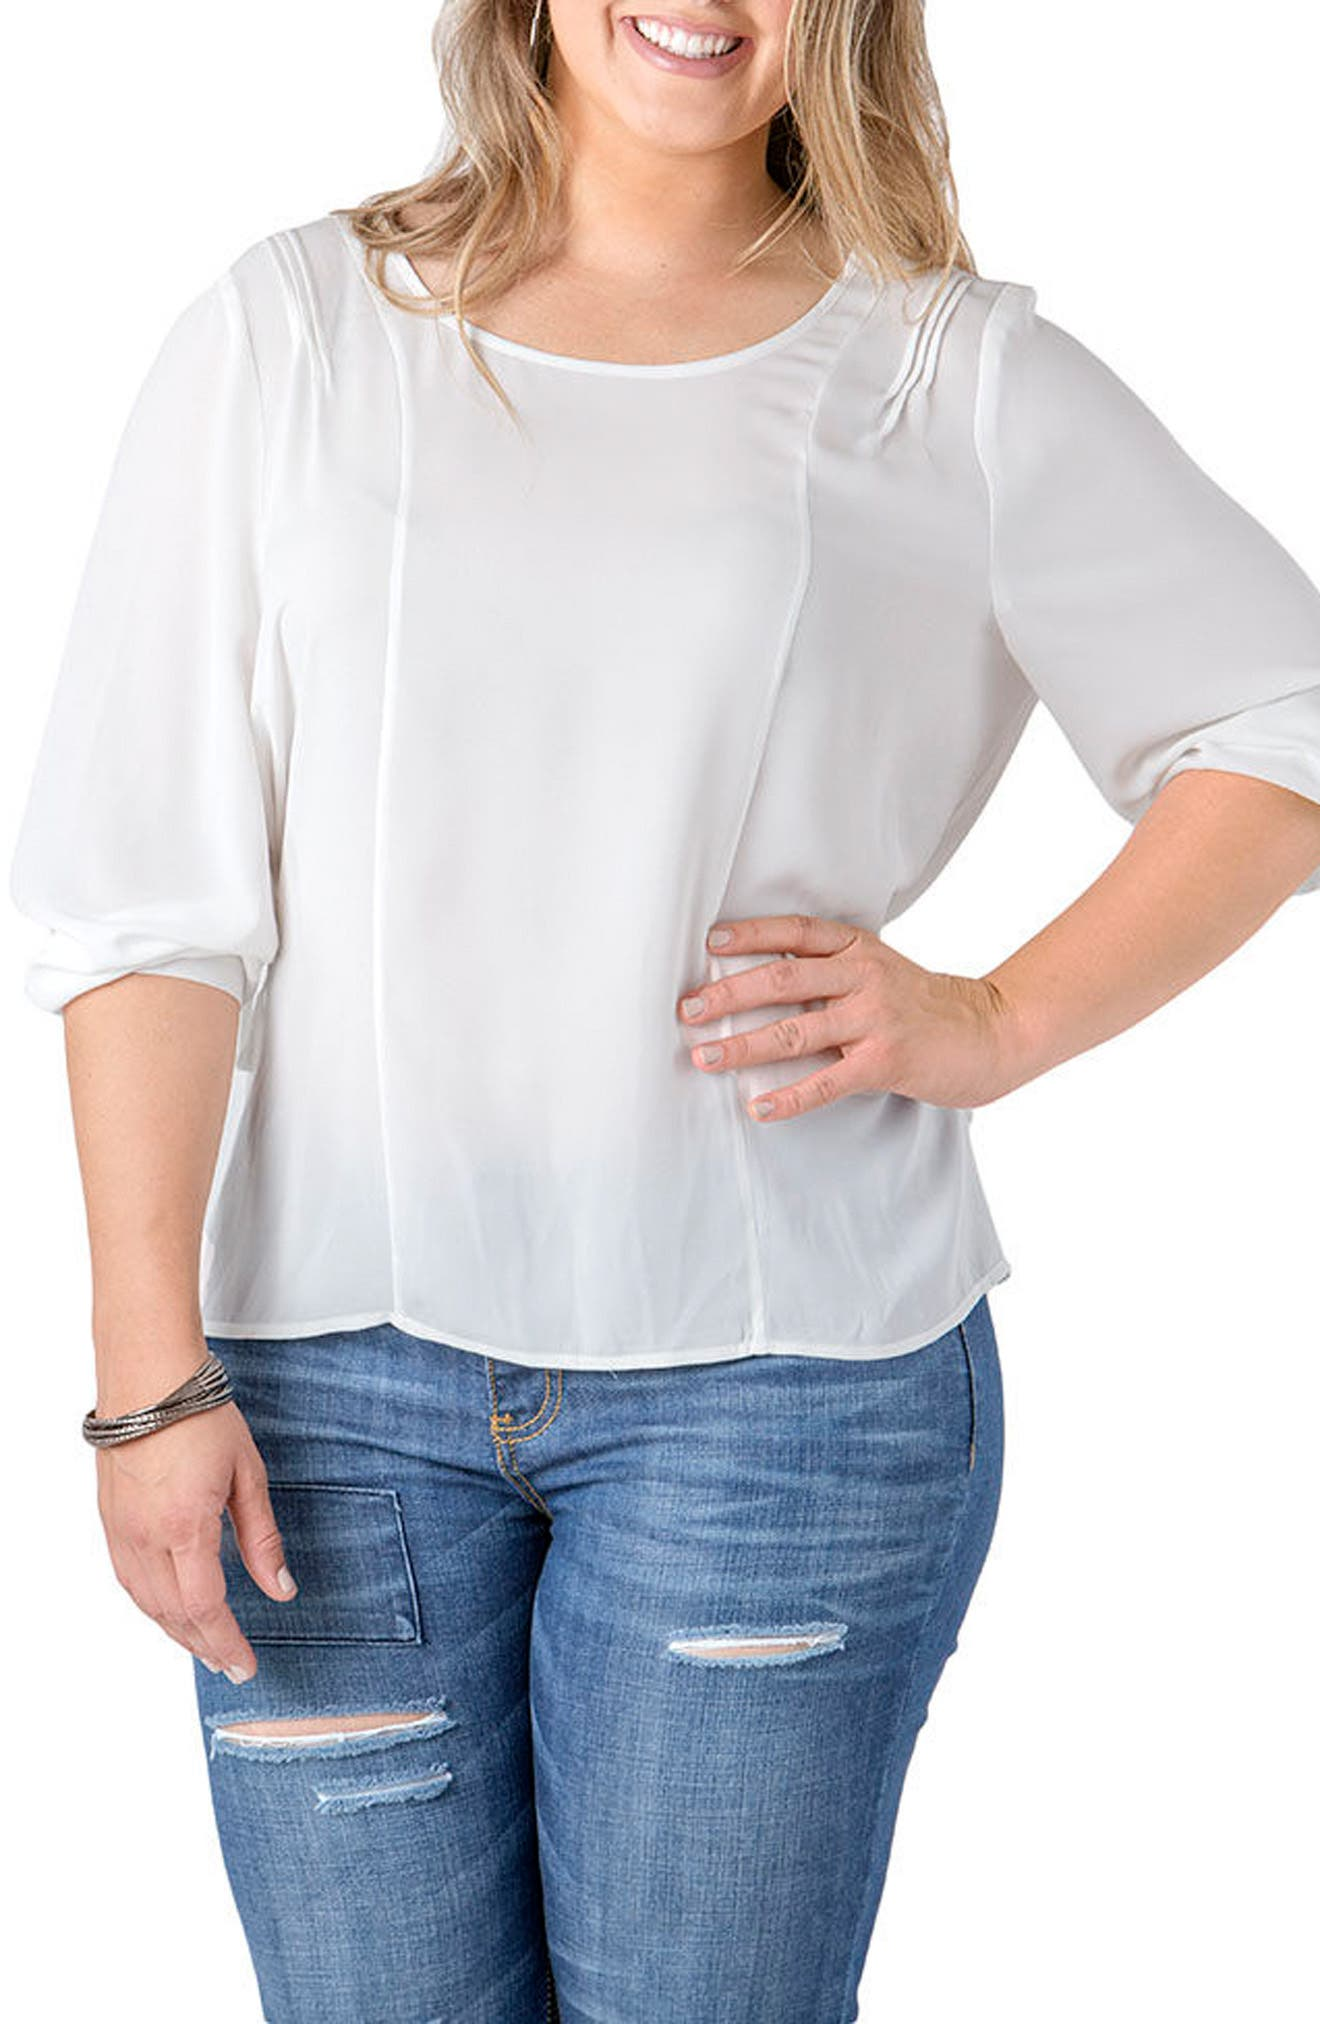 Main Image - Standards & Practices Joanna Cinch Back Top (Plus Size)